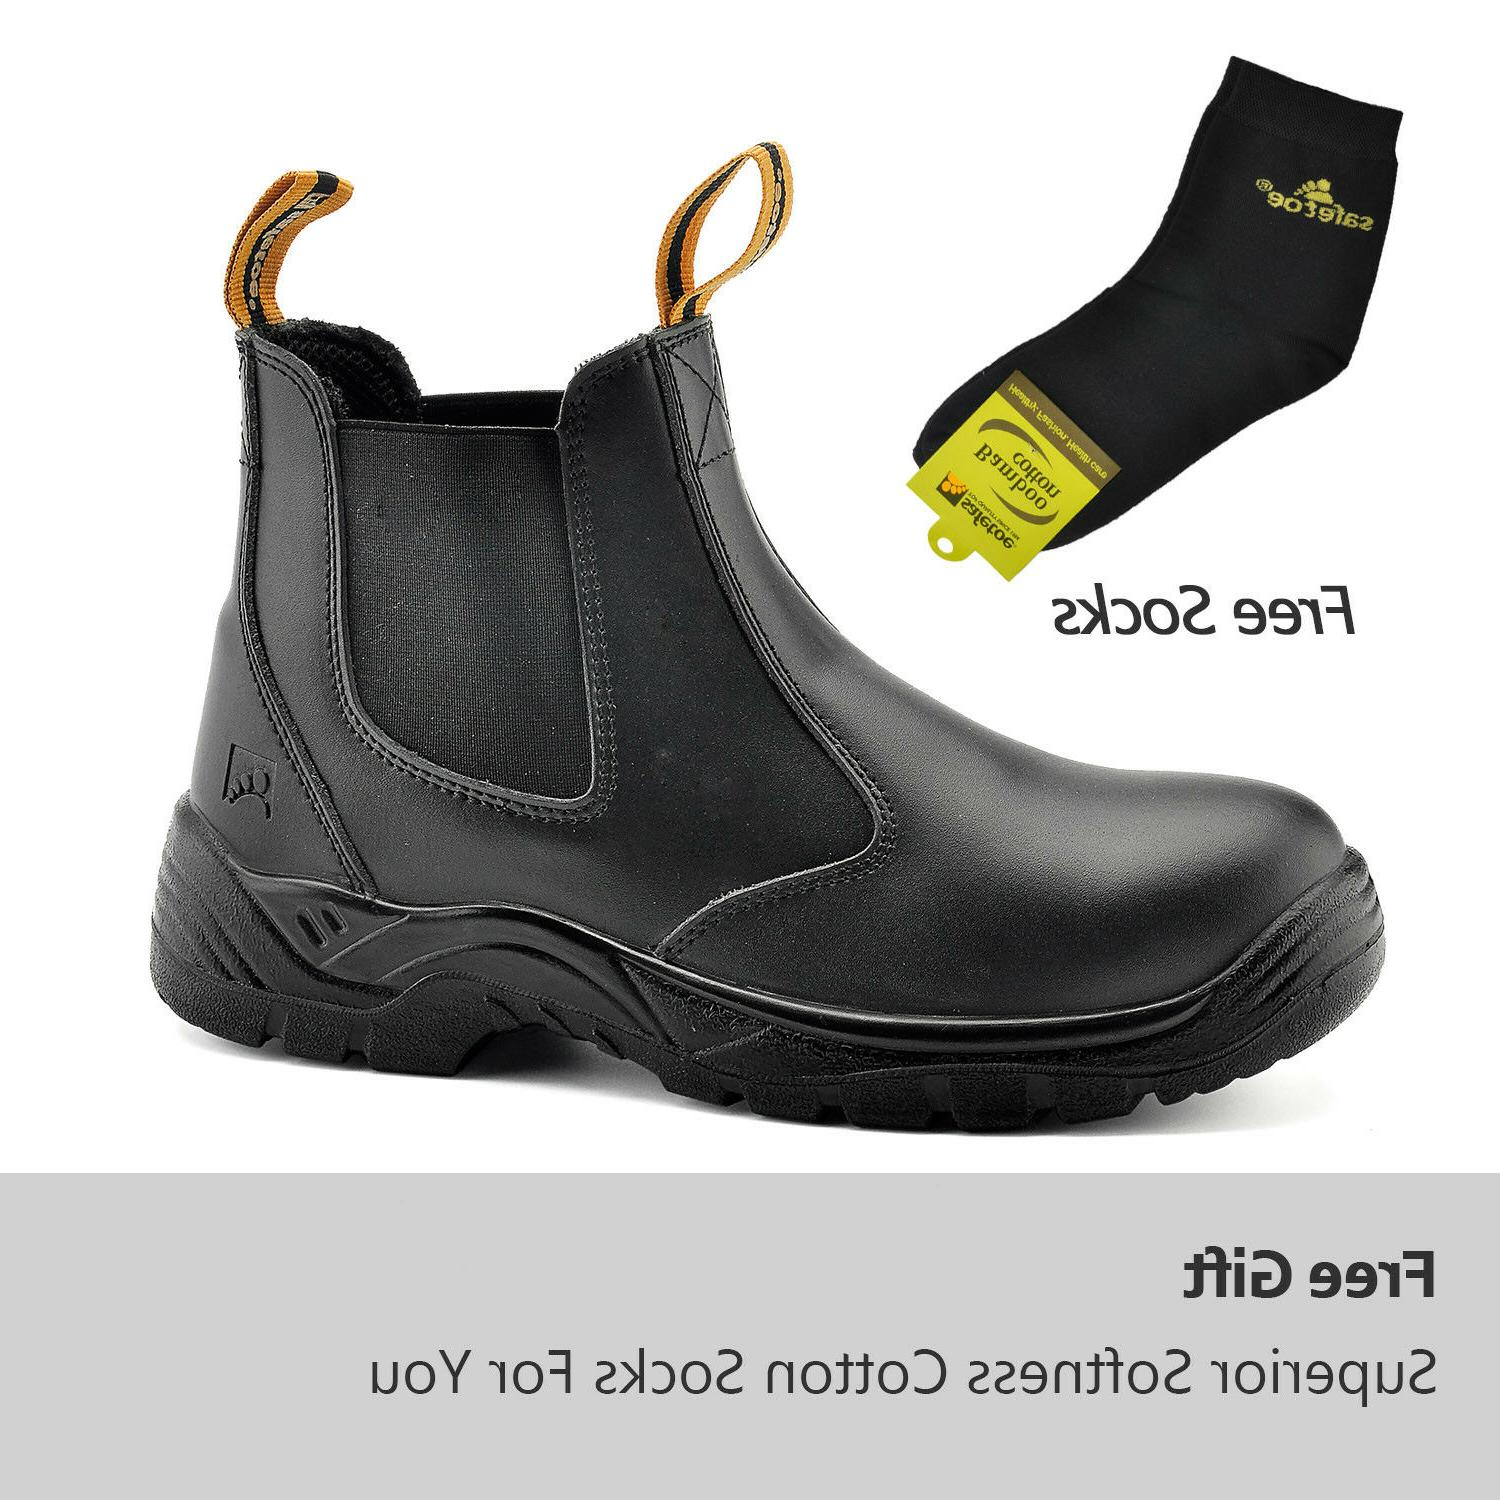 Safetoe Work Mens Shoes Water Resistant M-8025